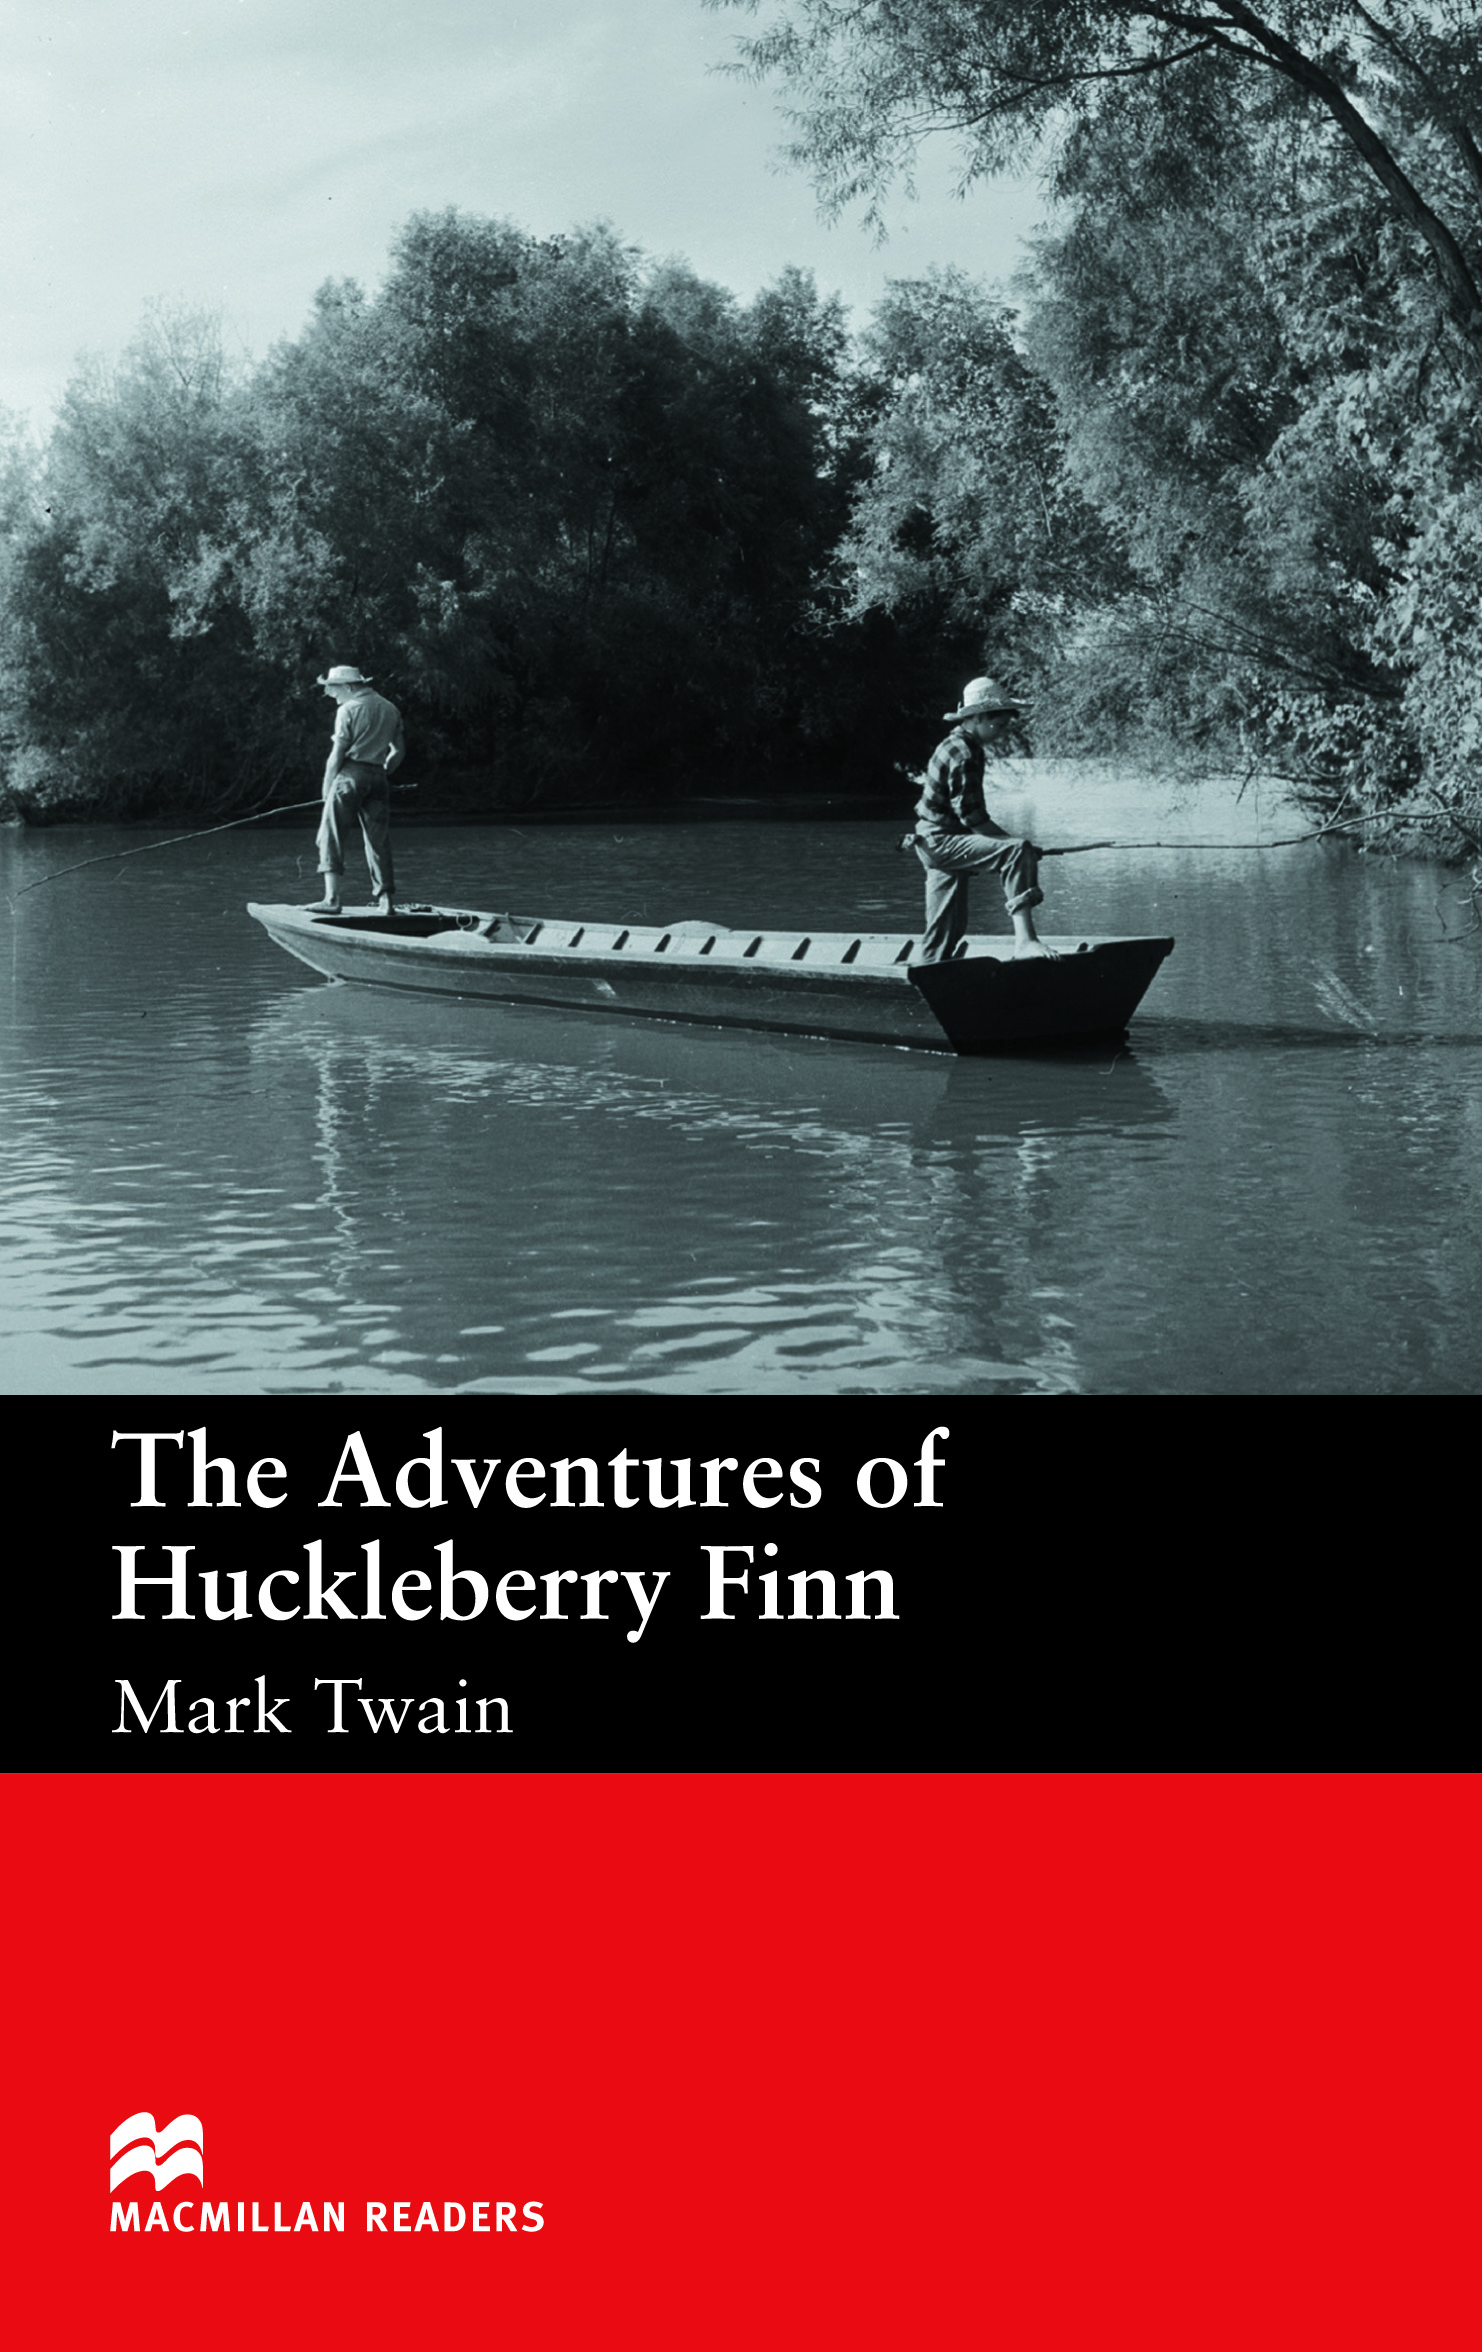 Macmillan Readers: The Adventures of Huckleberry Finn